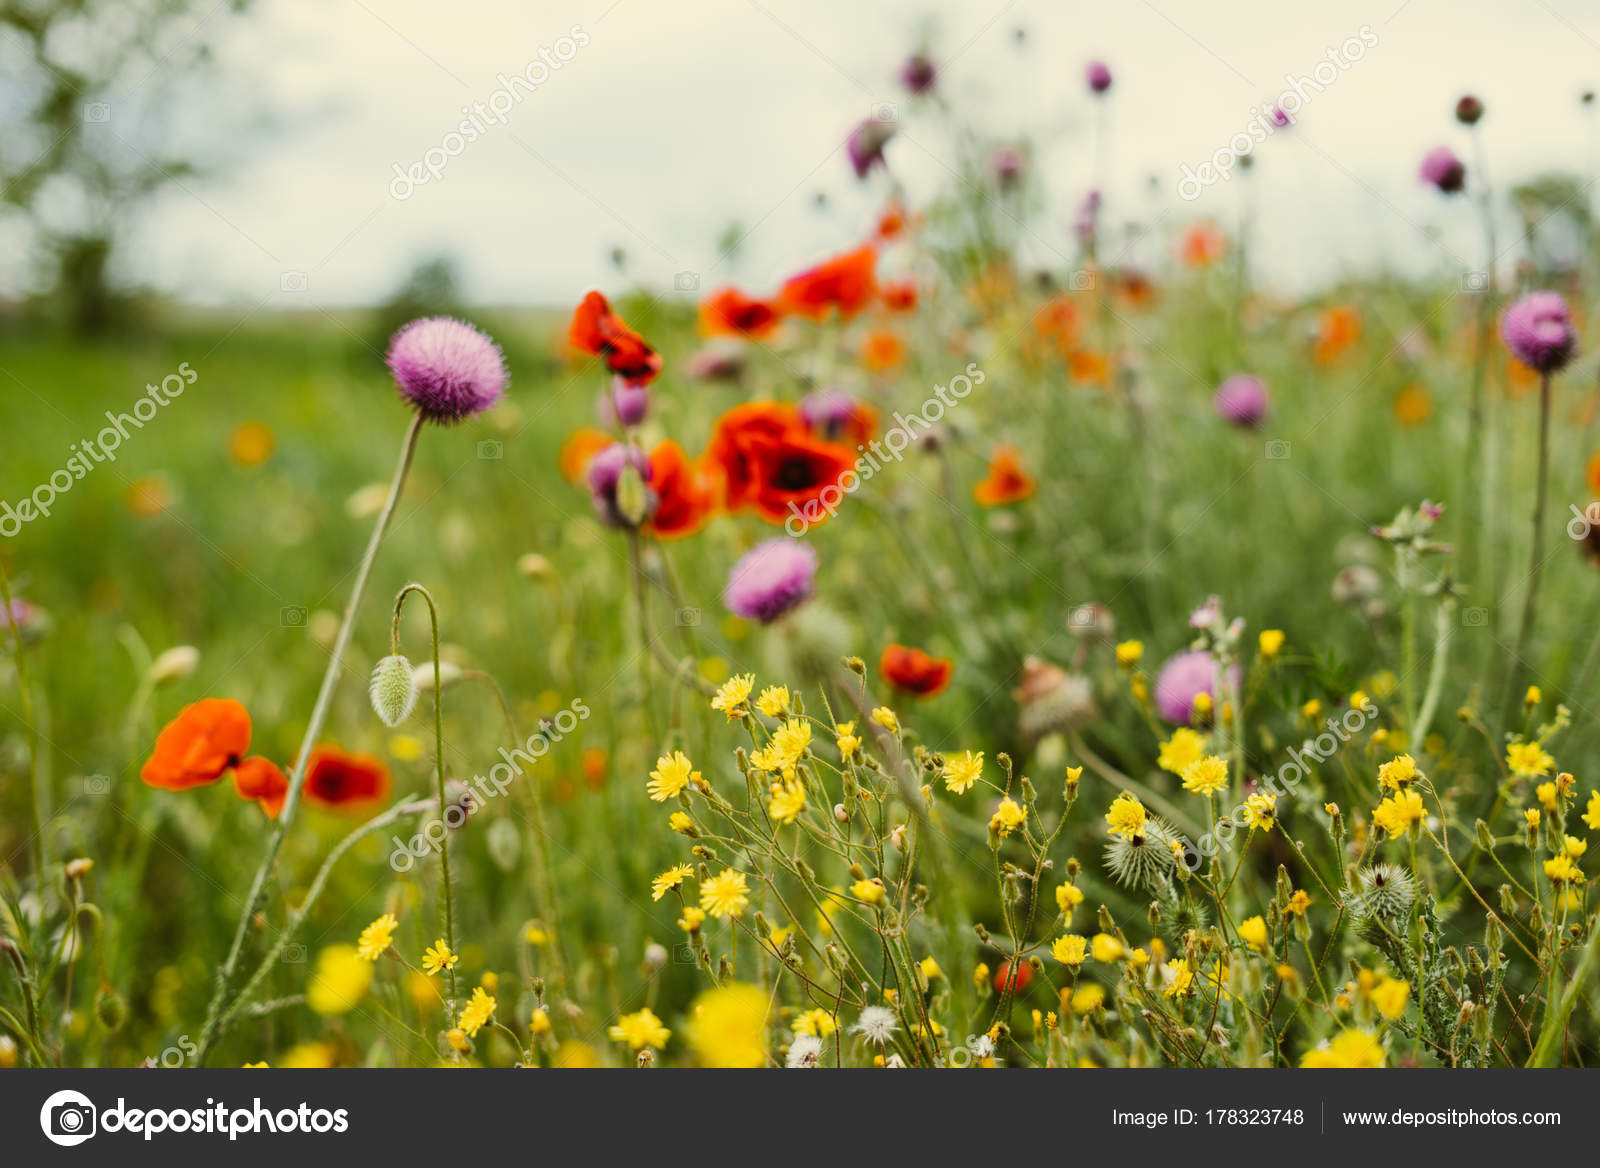 On The Endless Green Field Grow Fragrant Spring Yellow And Red